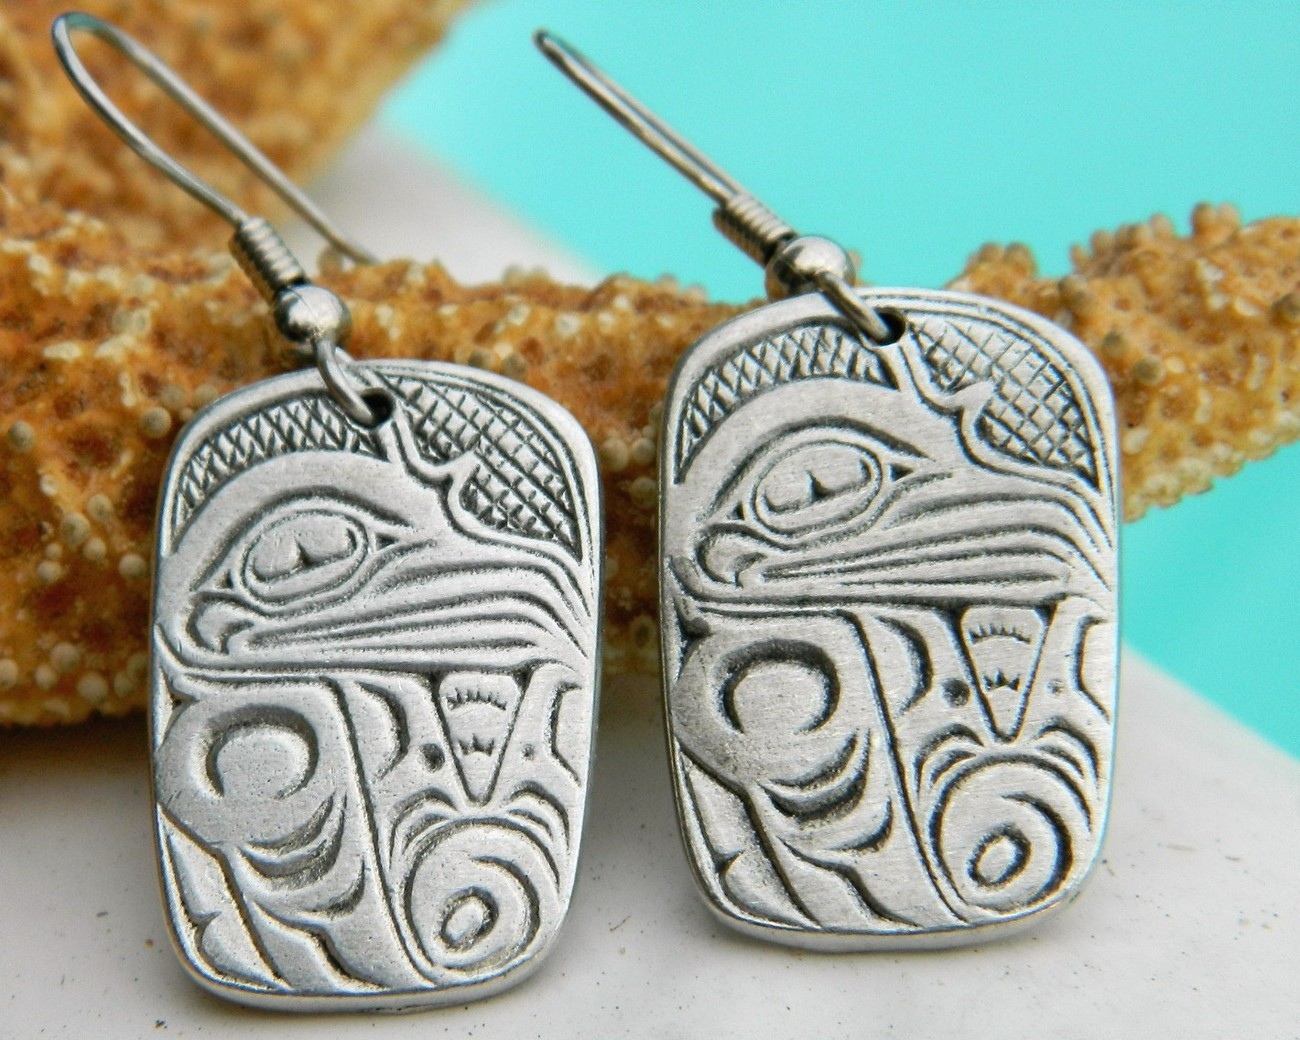 Aztec eagle bird symbol earrings cuauhtli pewter